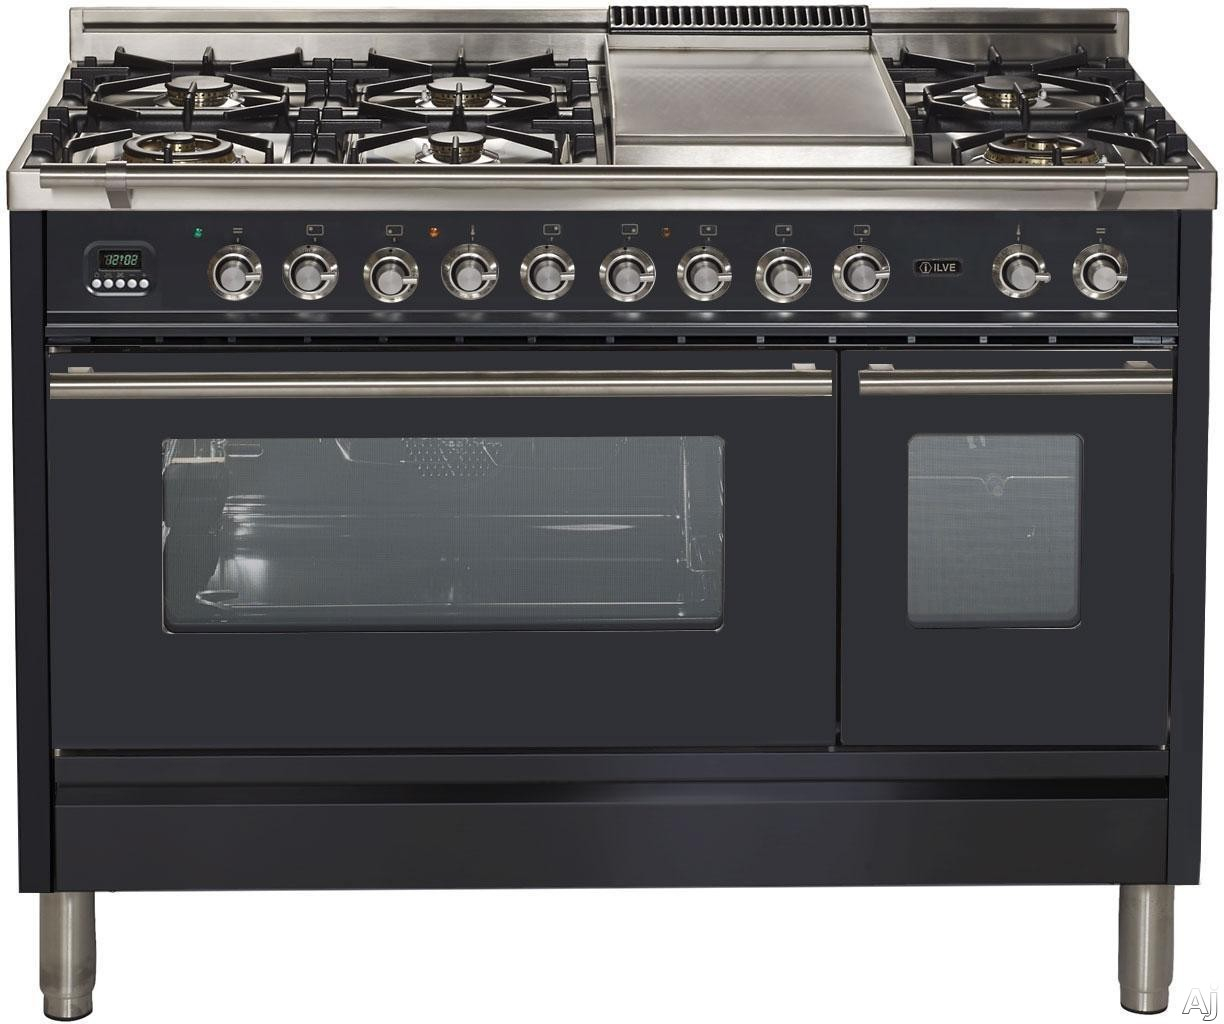 Ilve Proline Series UPW120FDMPM 48 Inch Dual Fuel Range with 7 Burners, Griddle, Digital Clock, Timer, Convection, Preheat Indicator Lamp, Rotisserie and 4.99 Cu. Ft. Capacity: Matte Graphite